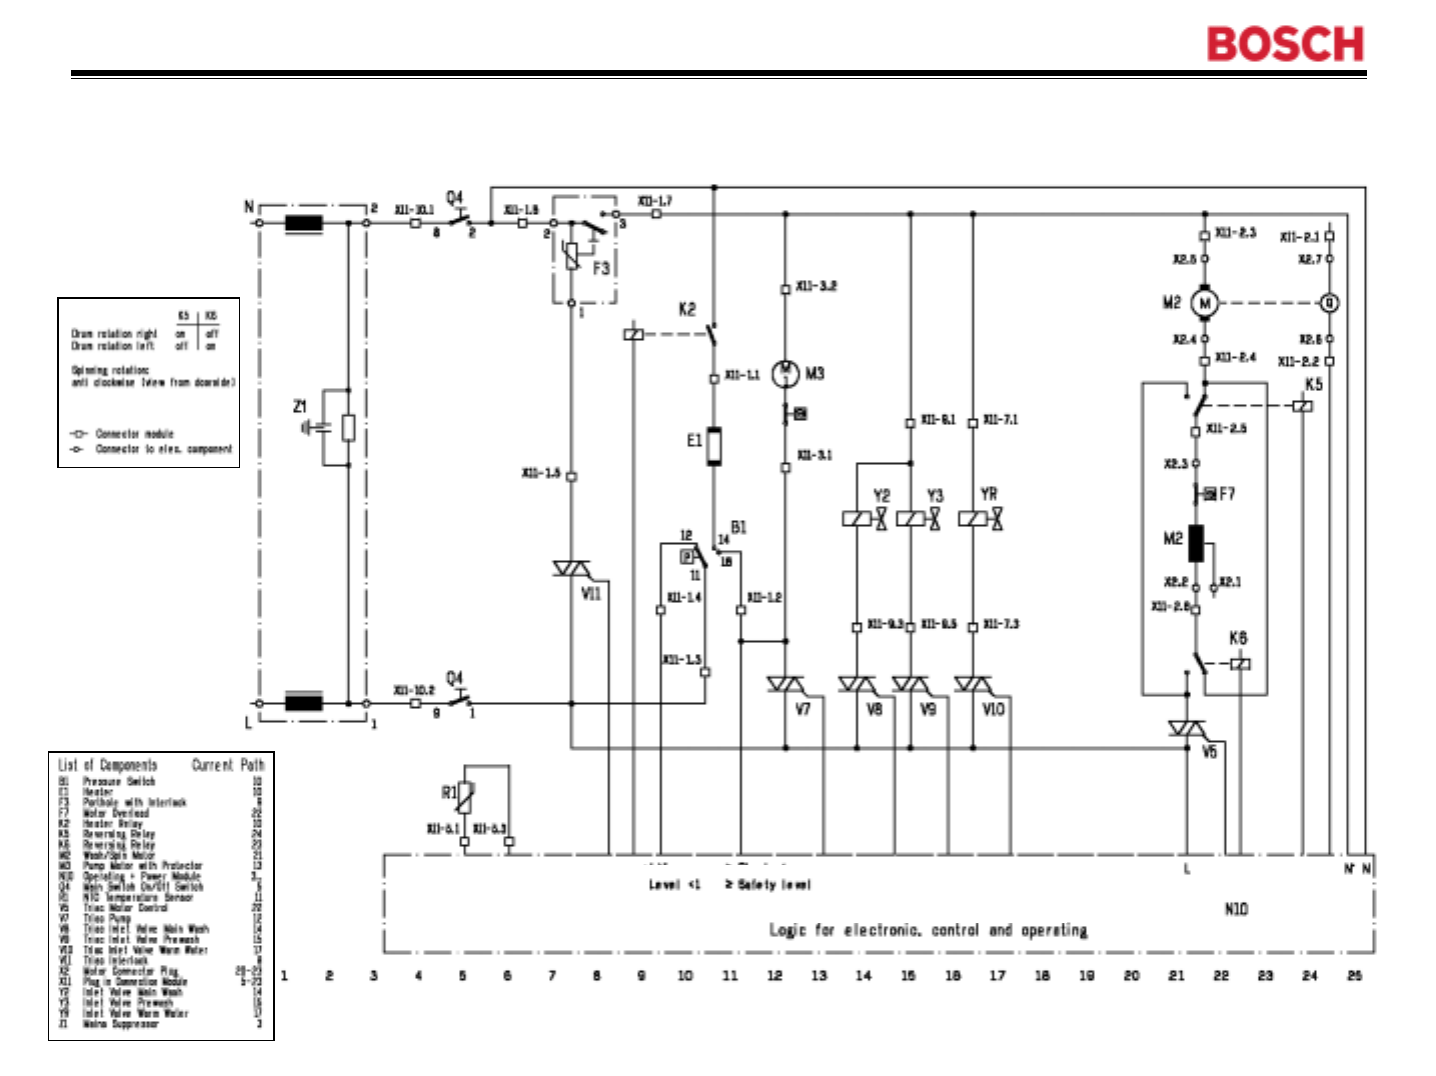 685c8626 18a2 4257 9875 ef2afaffb9a4 bg25?resize\=665%2C498 microwave oven wiring diagram air purifier wiring diagram \u2022 free m&w pro 14 wiring diagram at gsmportal.co